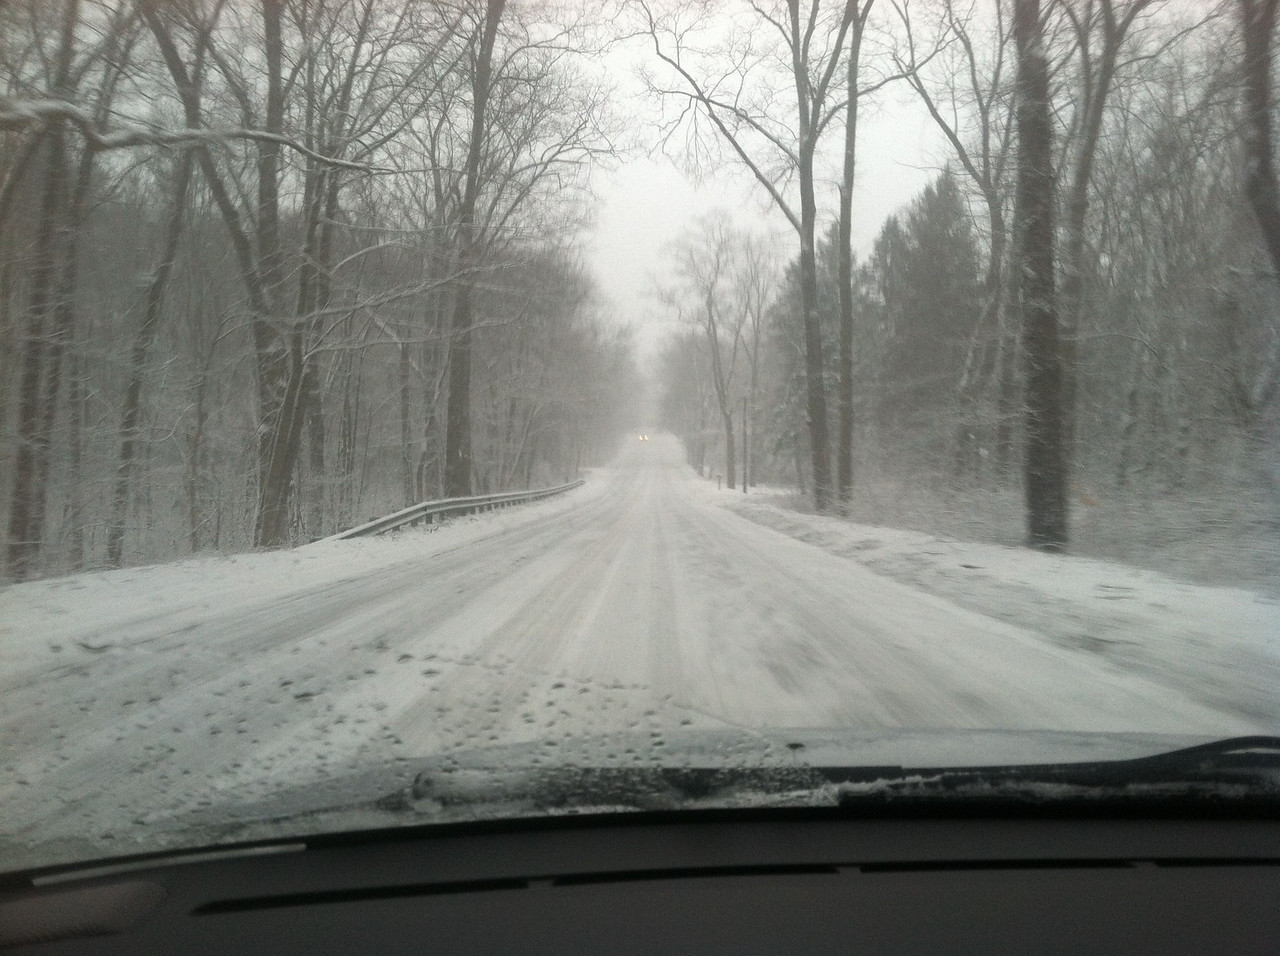 Friday afternoon, driving home on Rte 97